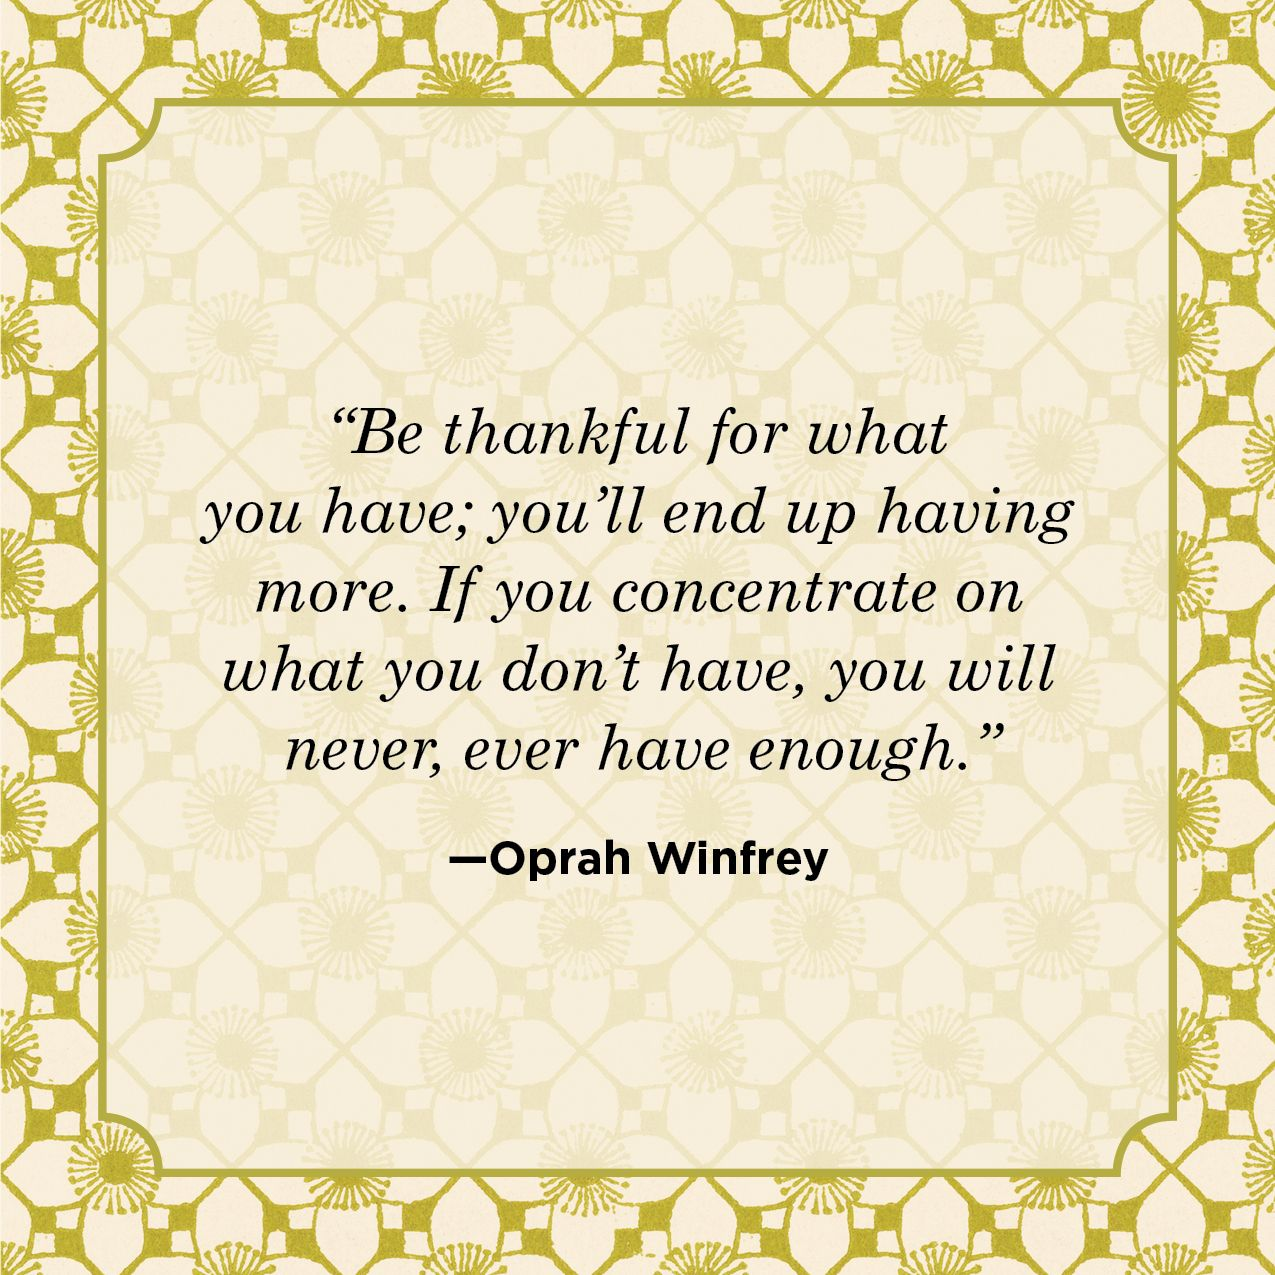 30 Thankful Quotes - Best Thank You Quotes and Sayings